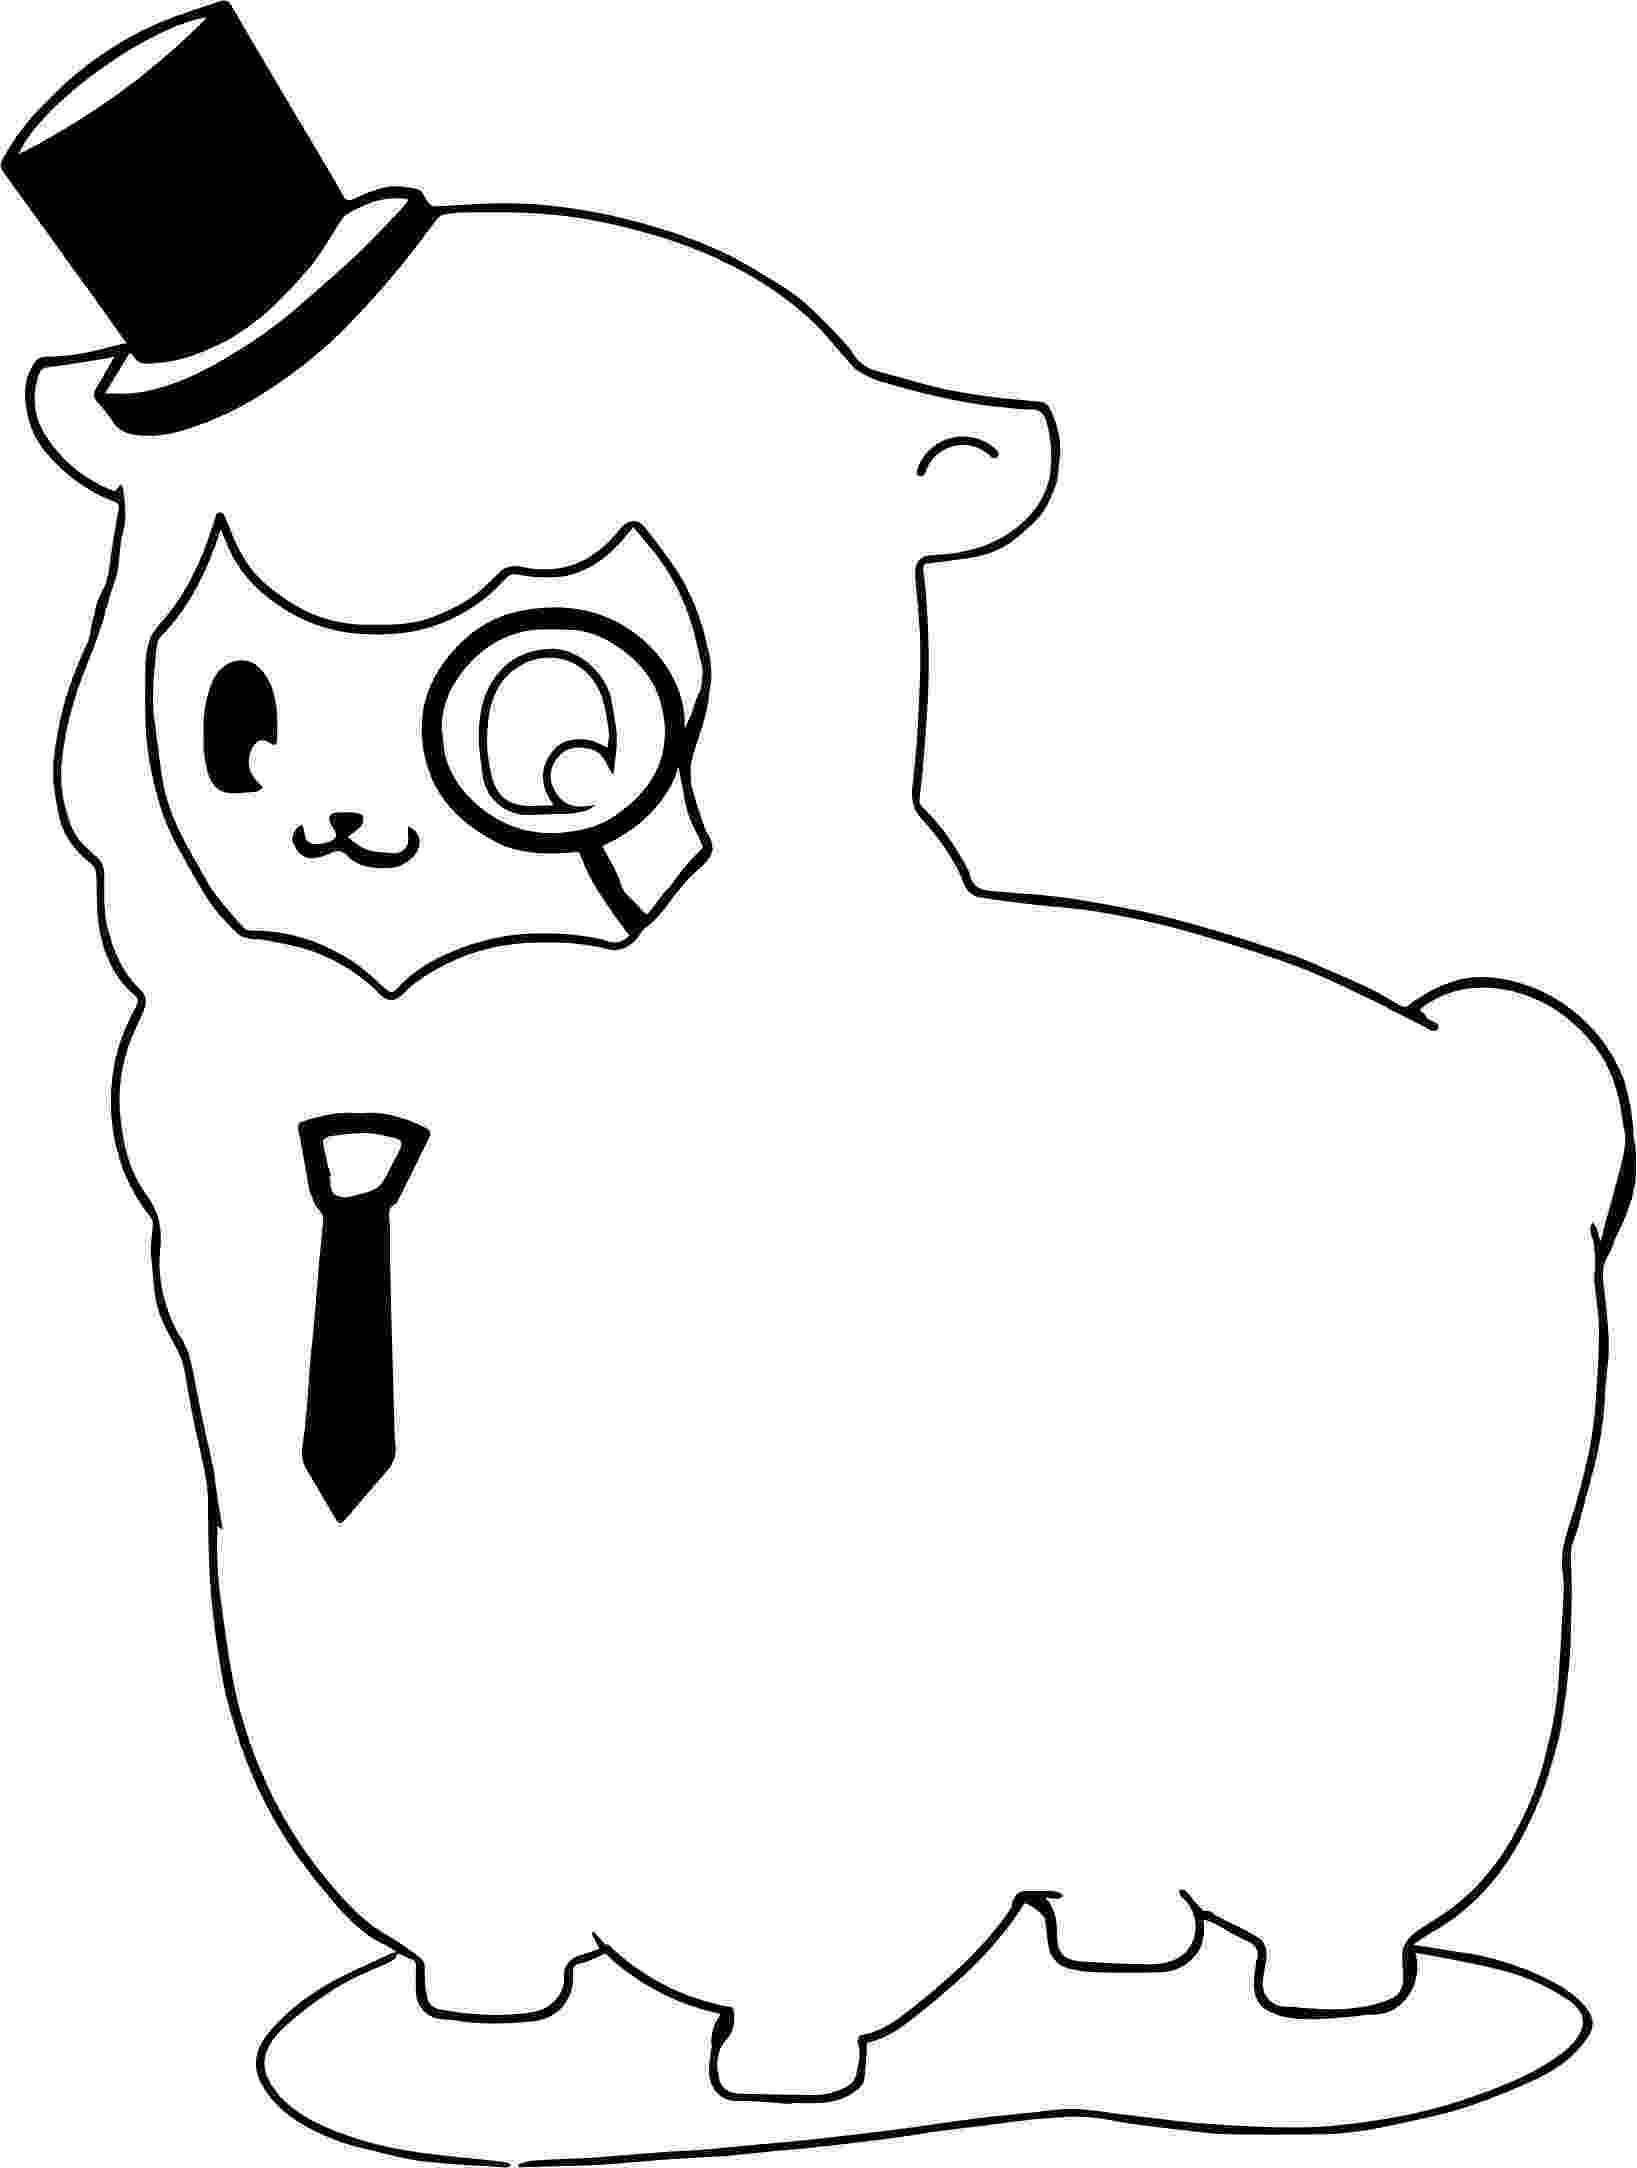 alpaca coloring pages alpaca coloring page free printable coloring pages pages alpaca coloring